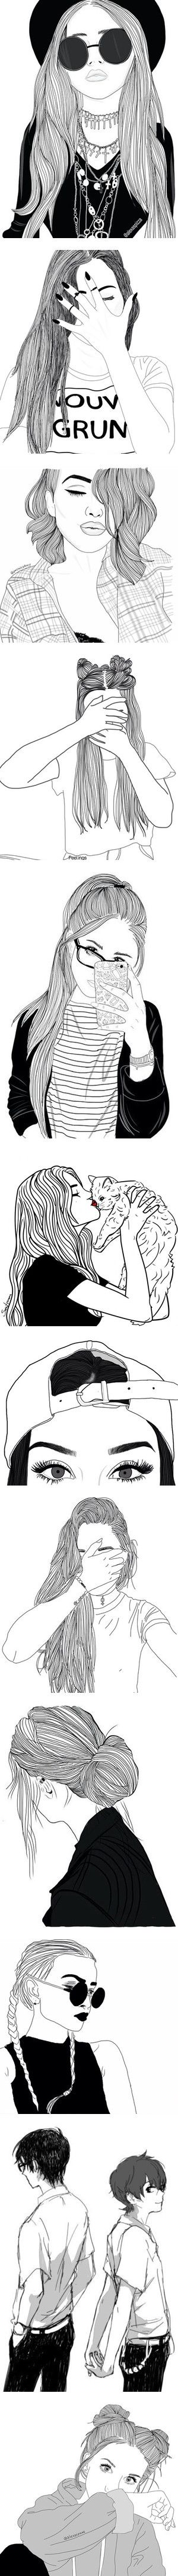 Doodle People by alicejean123 on Polyvore featuring fillers, doodle, outline, scribble, home, home decor, wall art, girls wall art, heart home decor and doodles